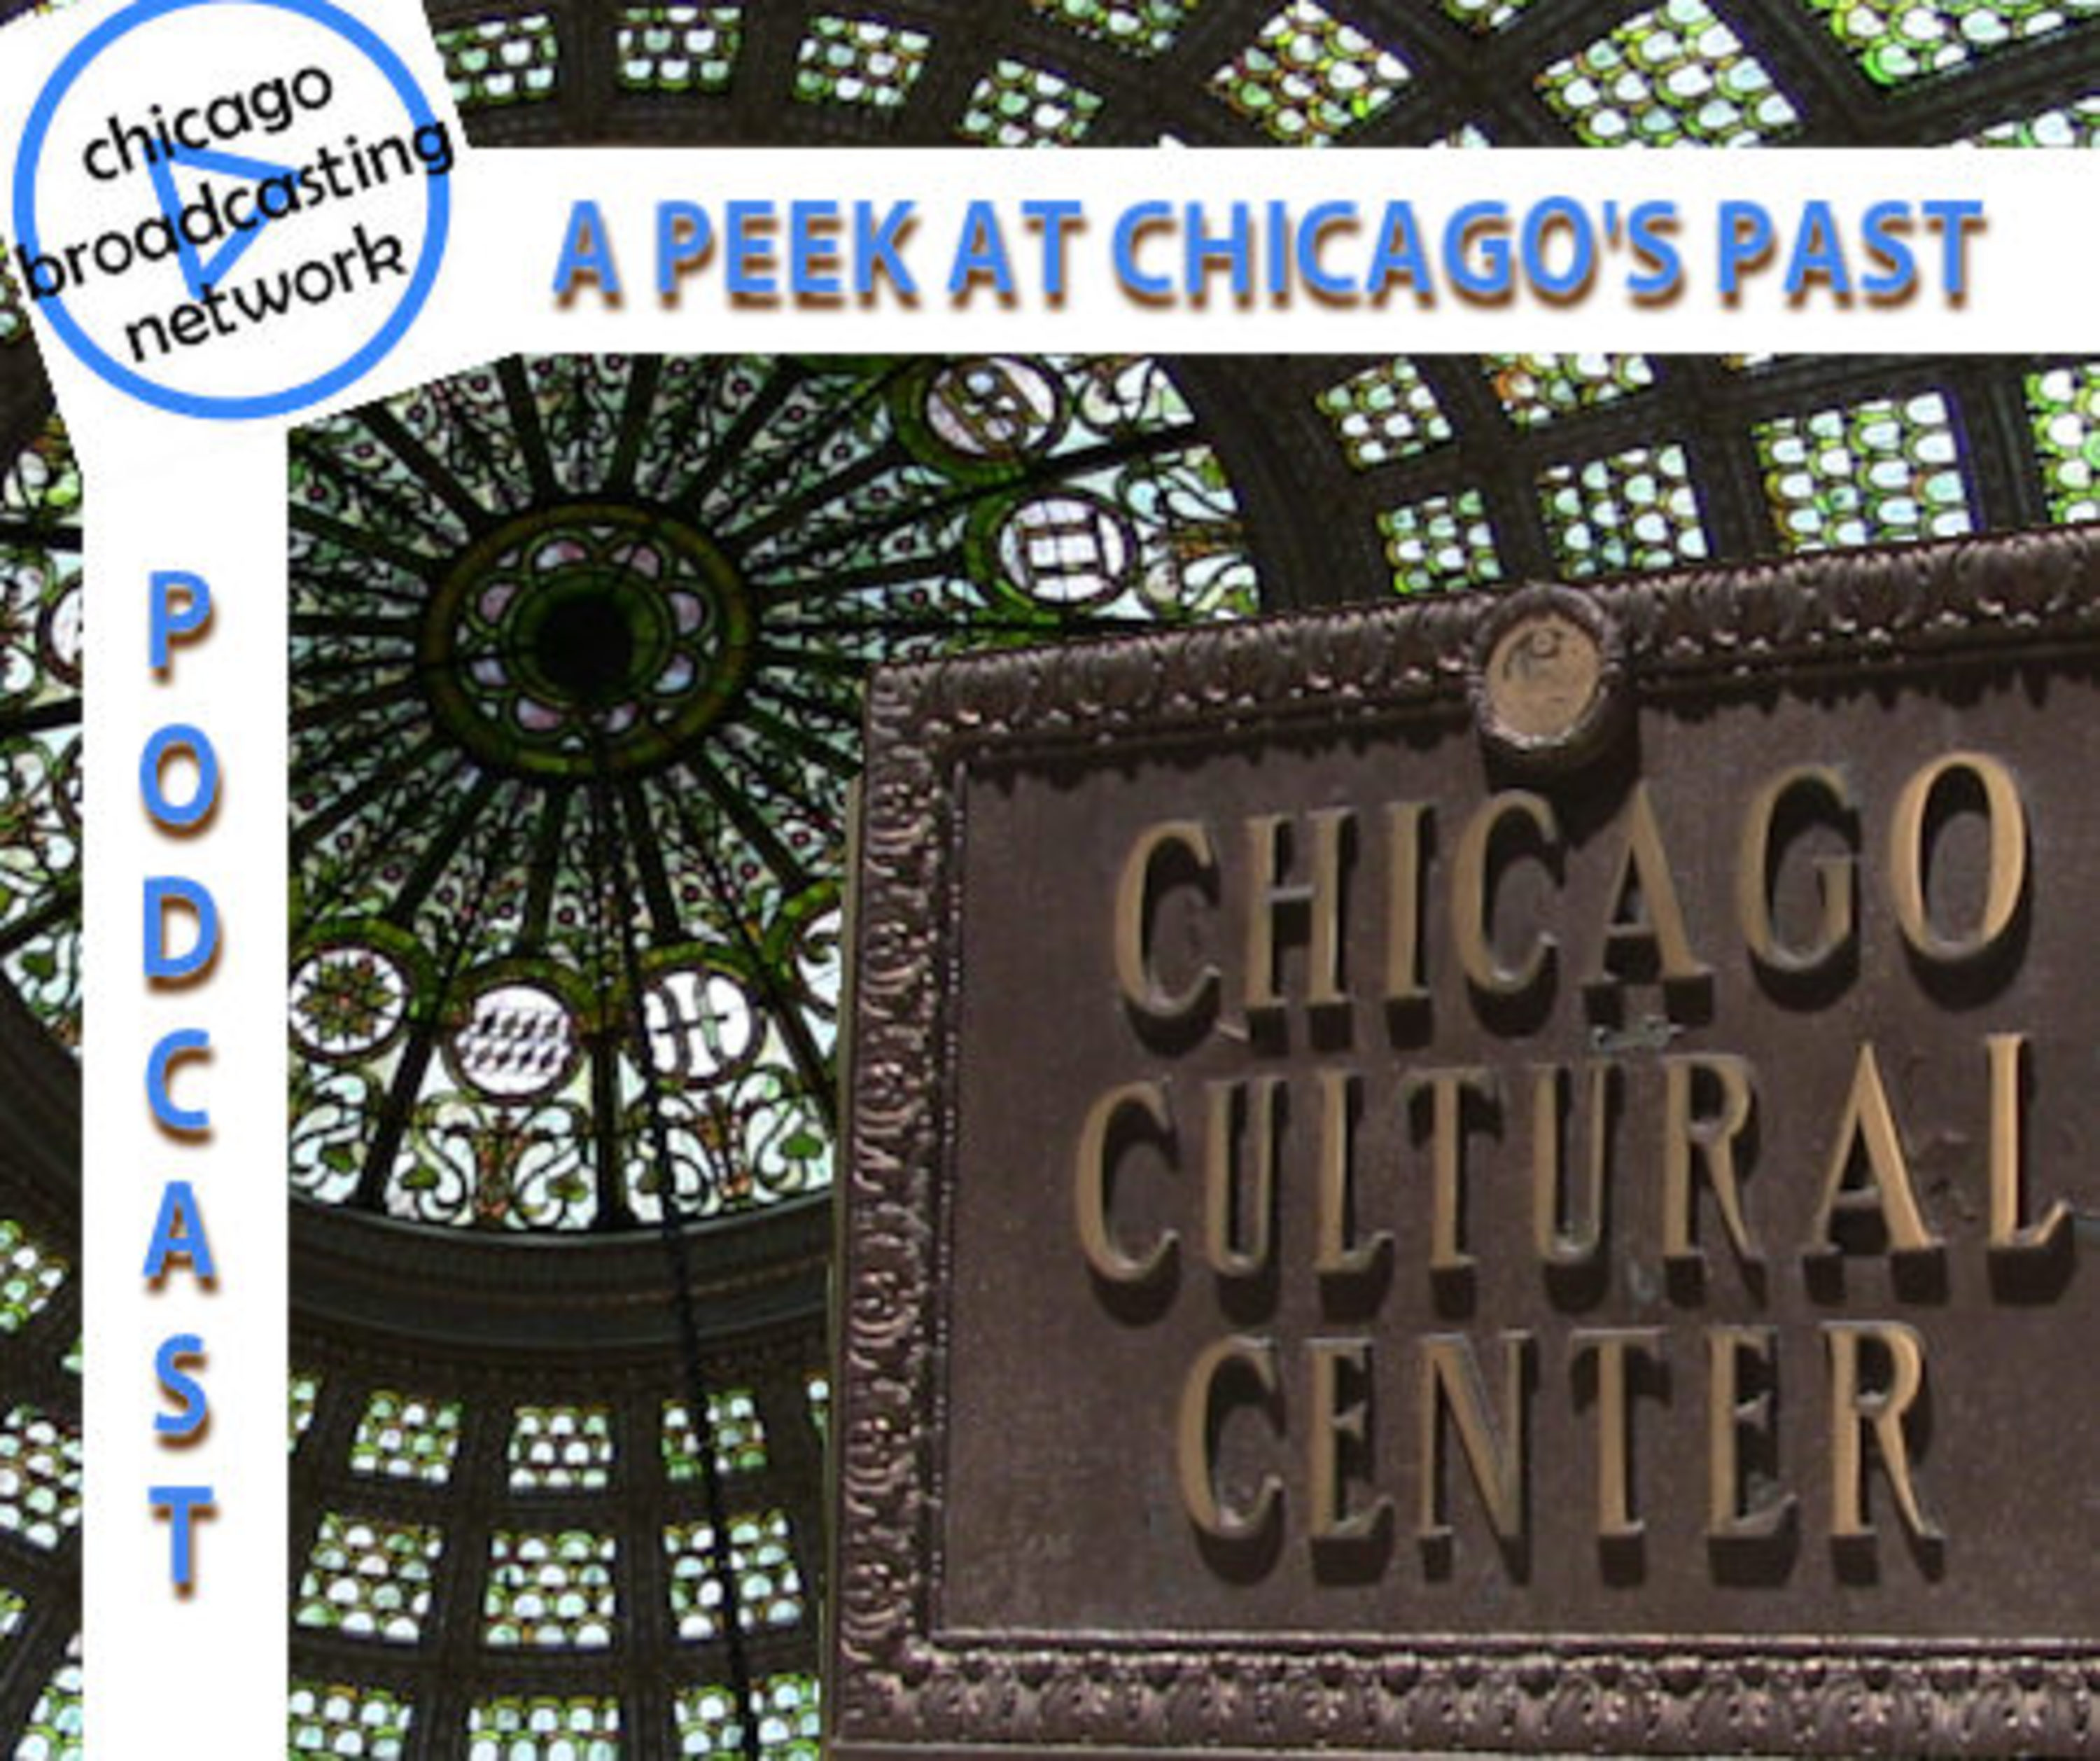 Historical Peek at the Chicago Cultural Center